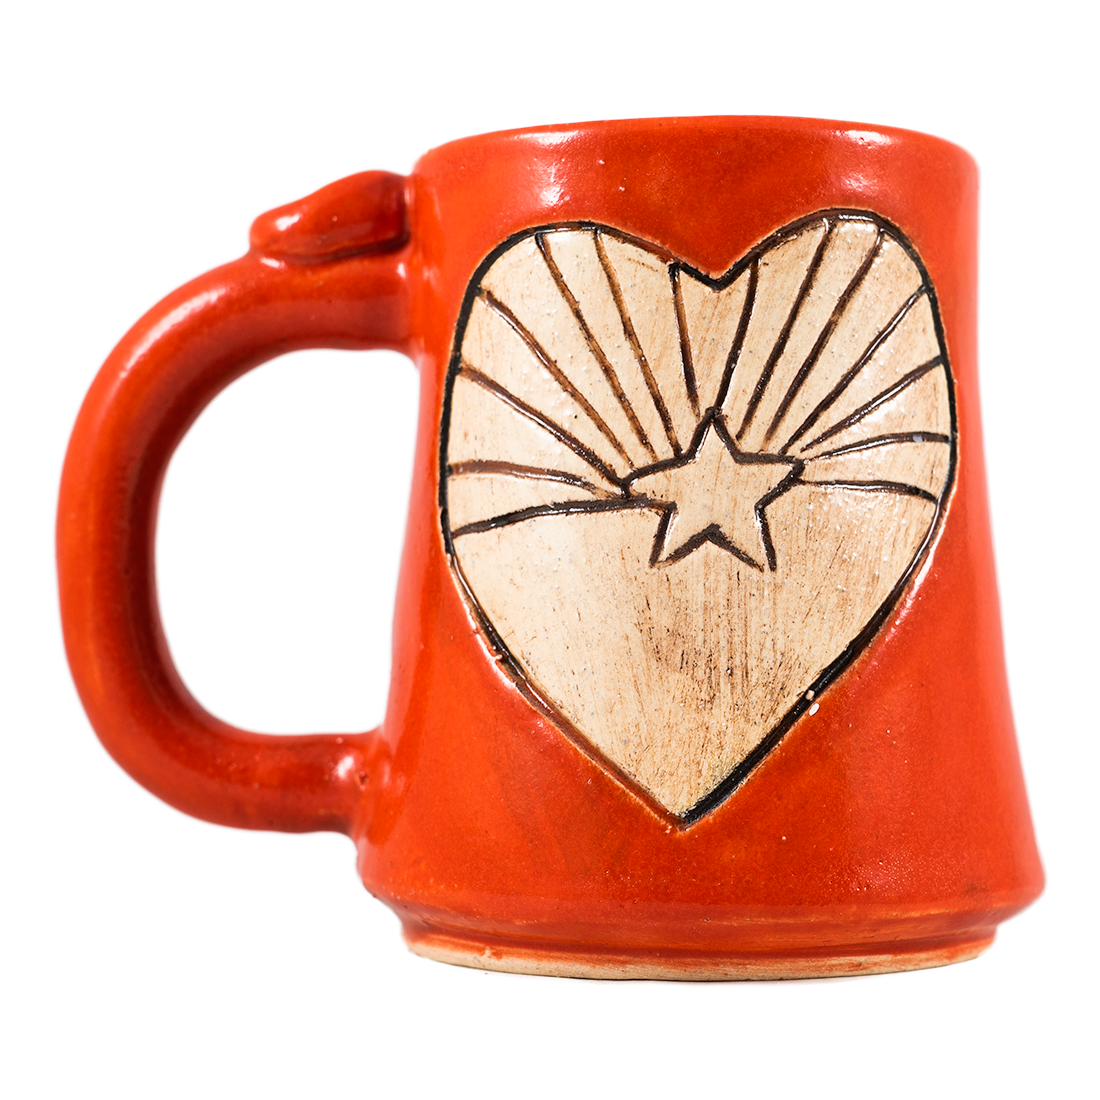 AZ State Flag in Heart Handmade Ceramic Mug